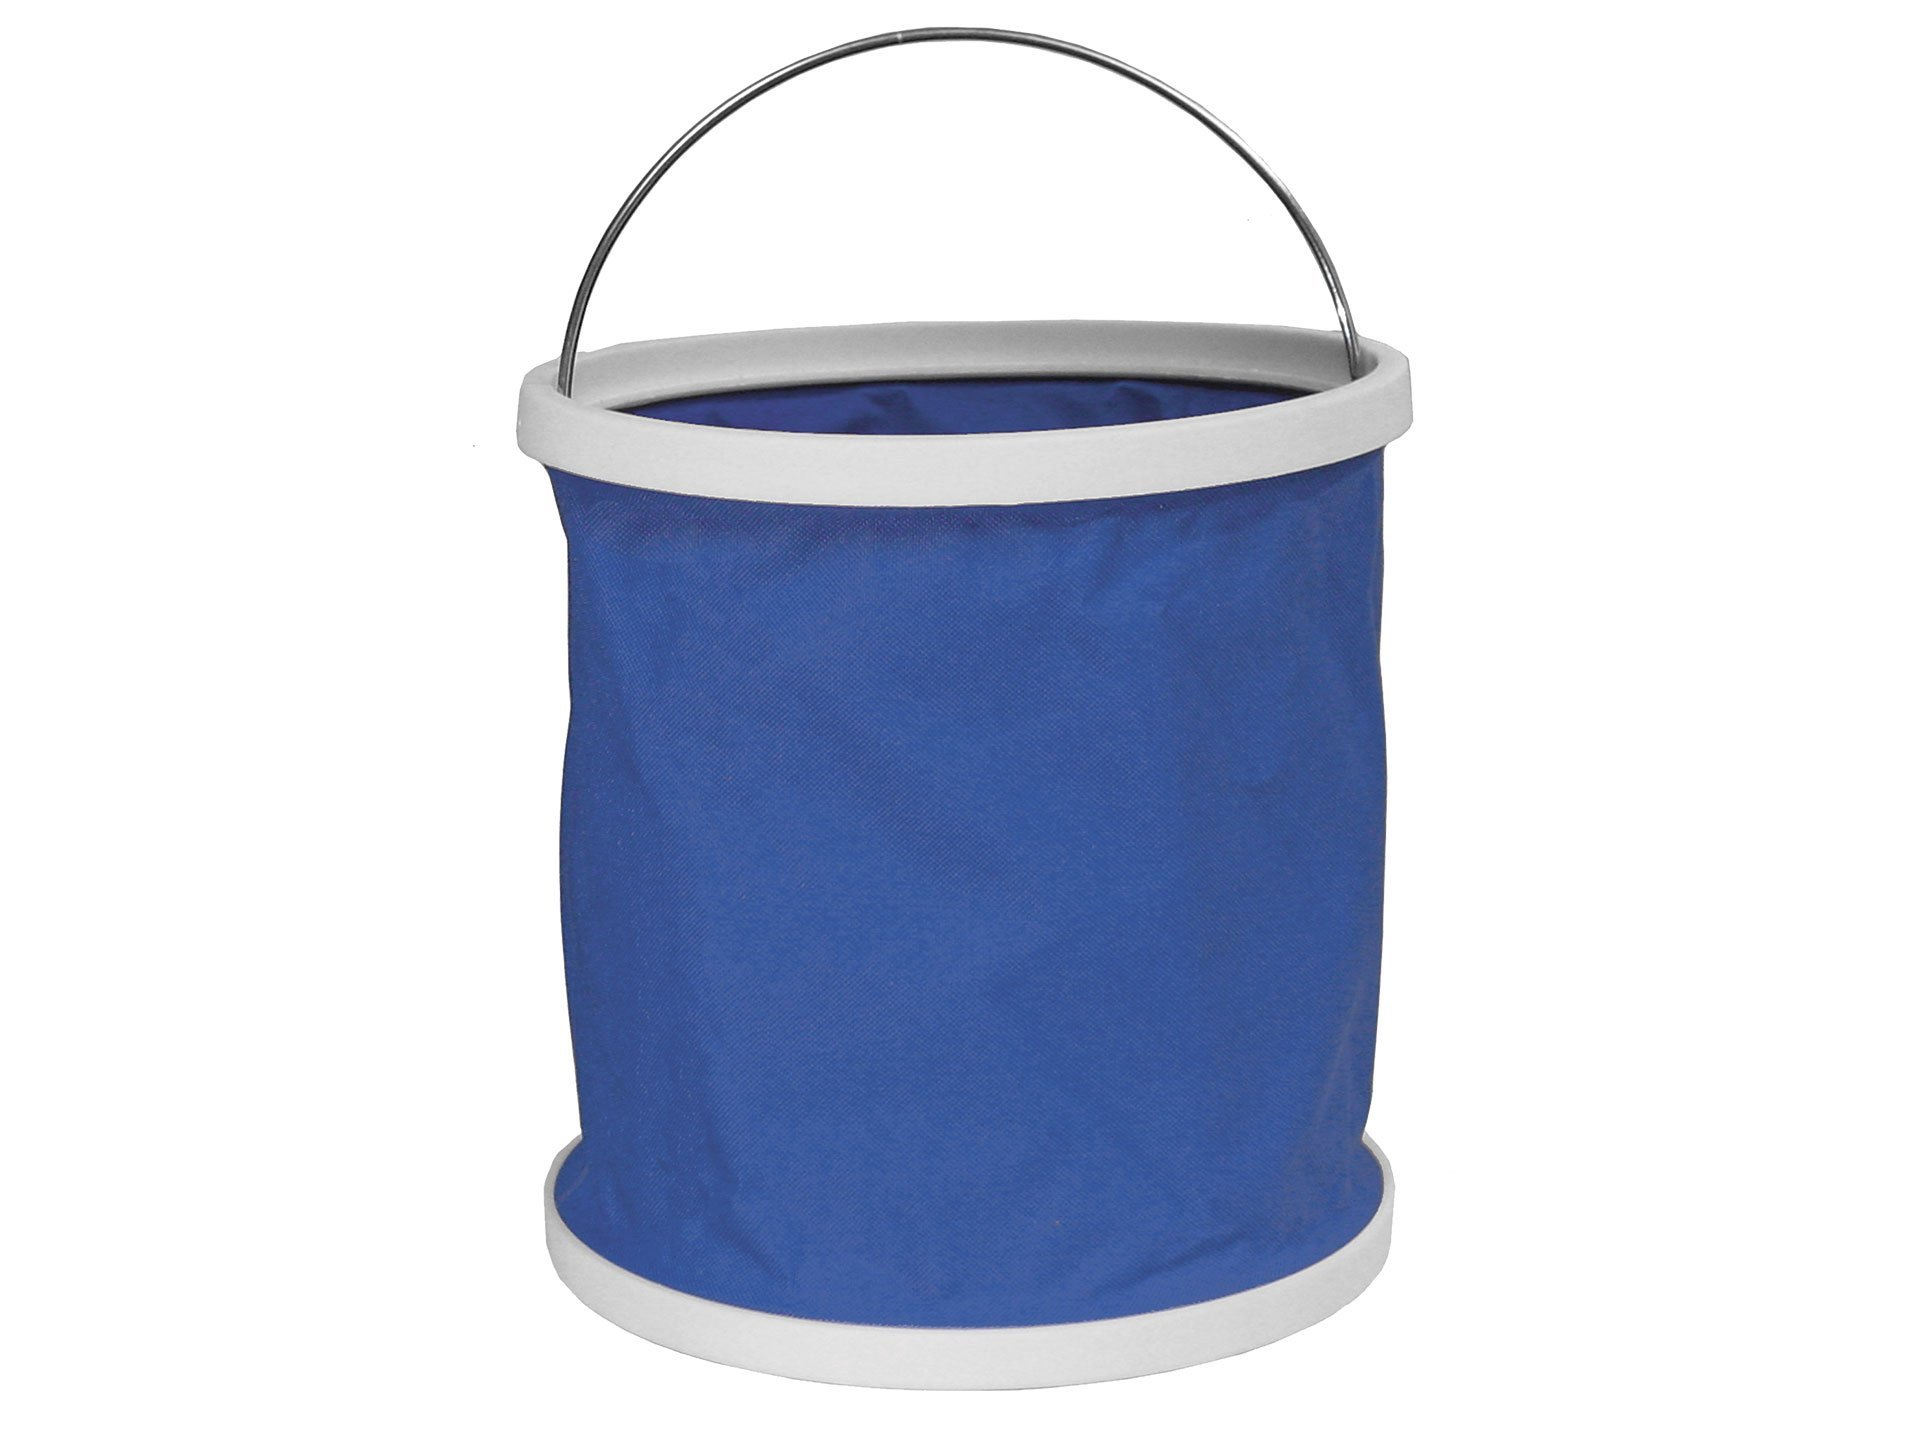 Derby Originals Premium 3.5 Gallon Collapsible Water Bucket - Portable Lightweight Folding Water Bucket - Multifunctional for Camping, Fishing, Boating, Gardening, Farm, Pet, and Automotive Uses by Derby Originals